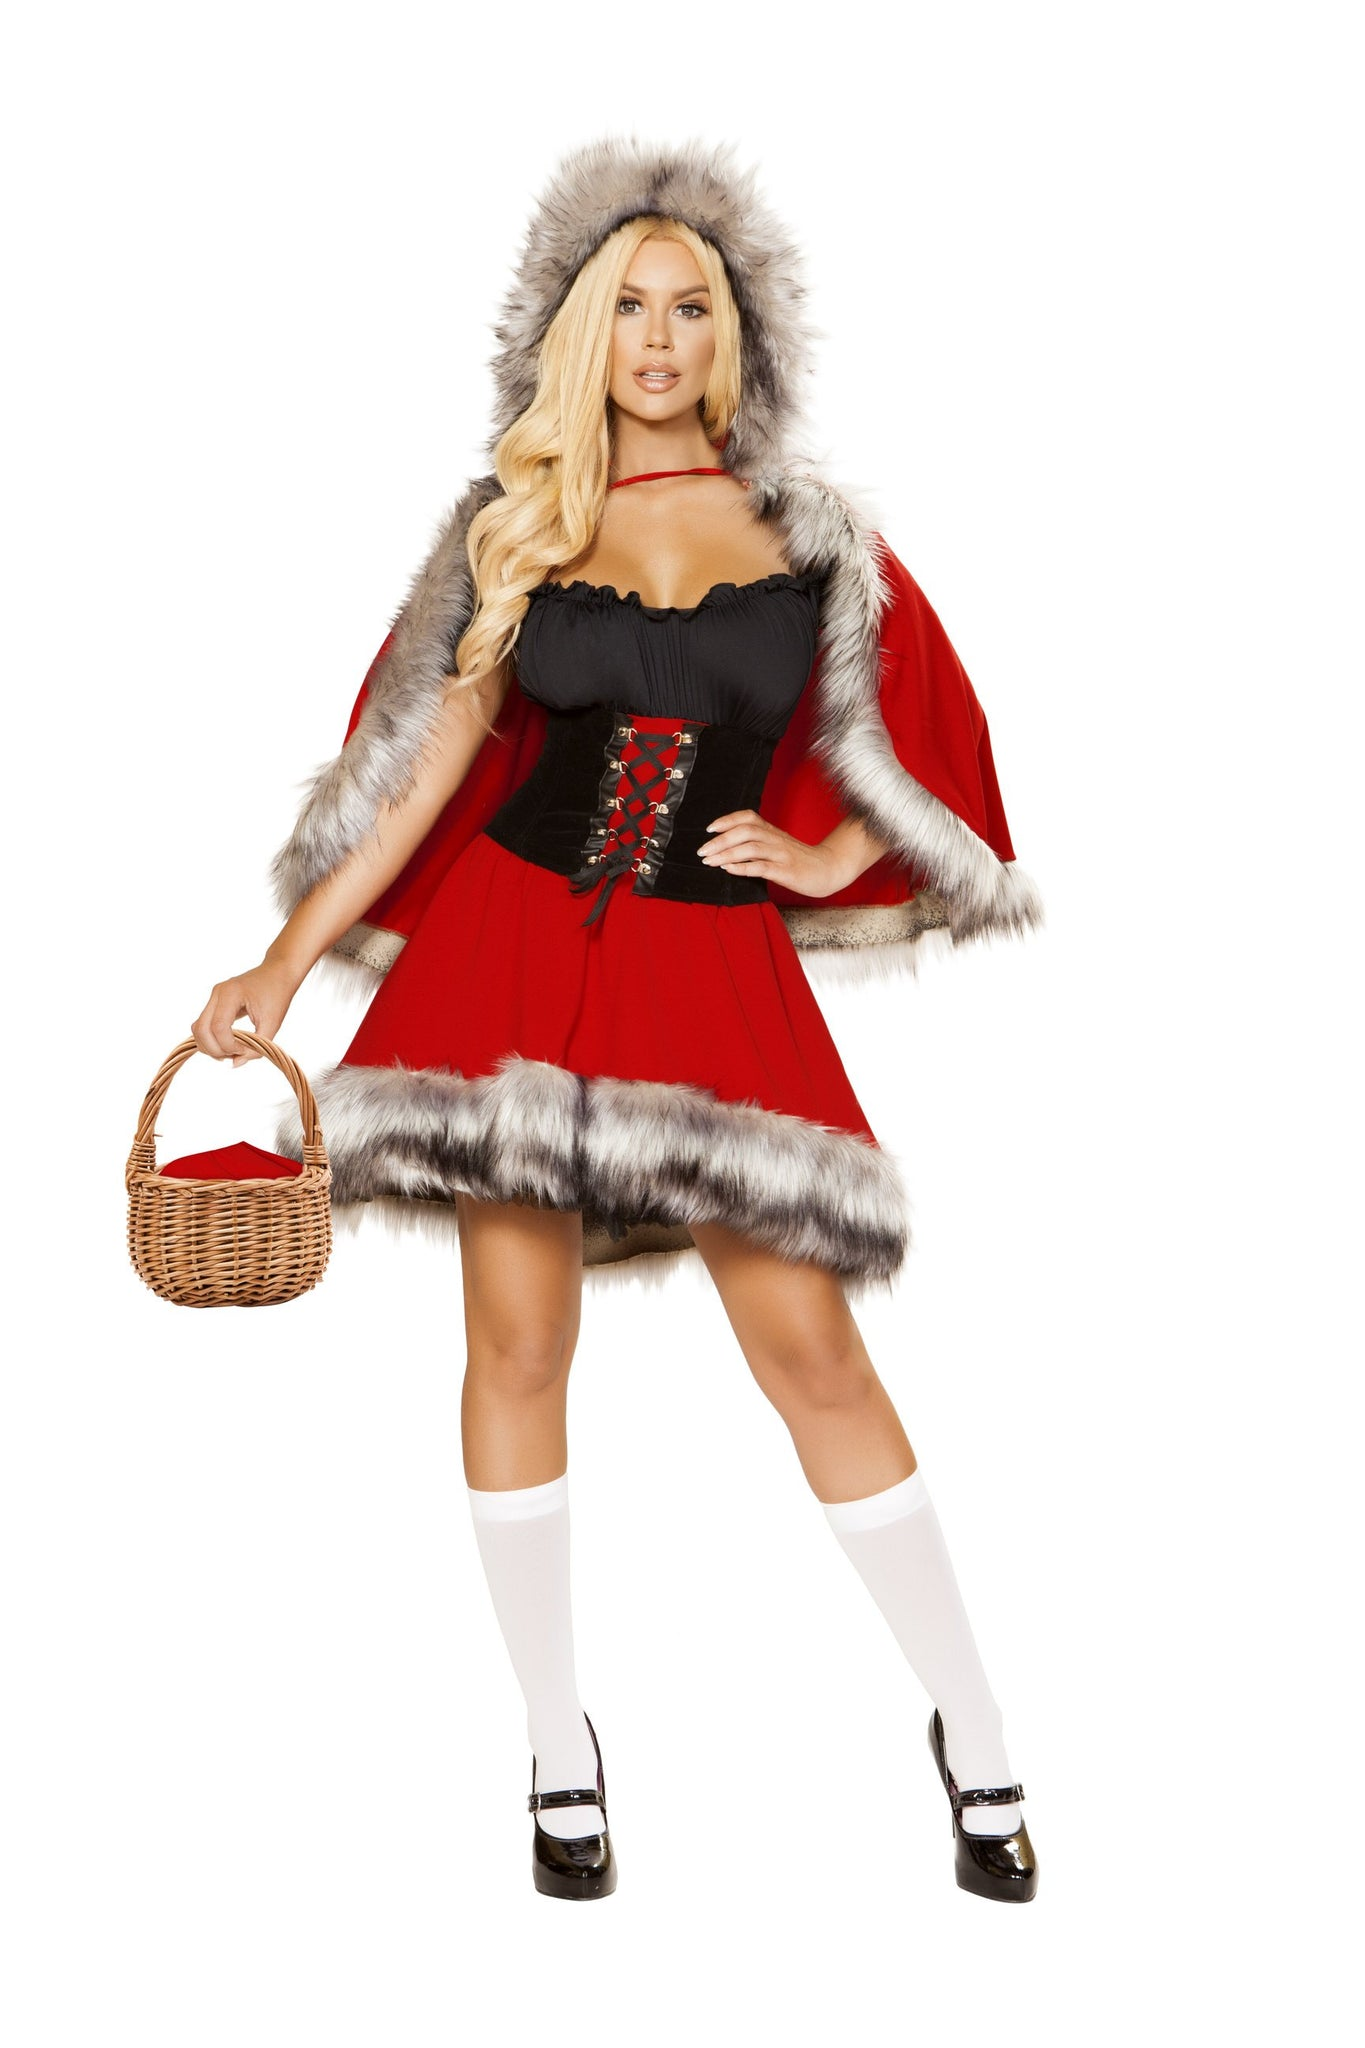 4854 - Roma Costume 3pc The Red Chapped Diva Little Red Riding Hood Disney